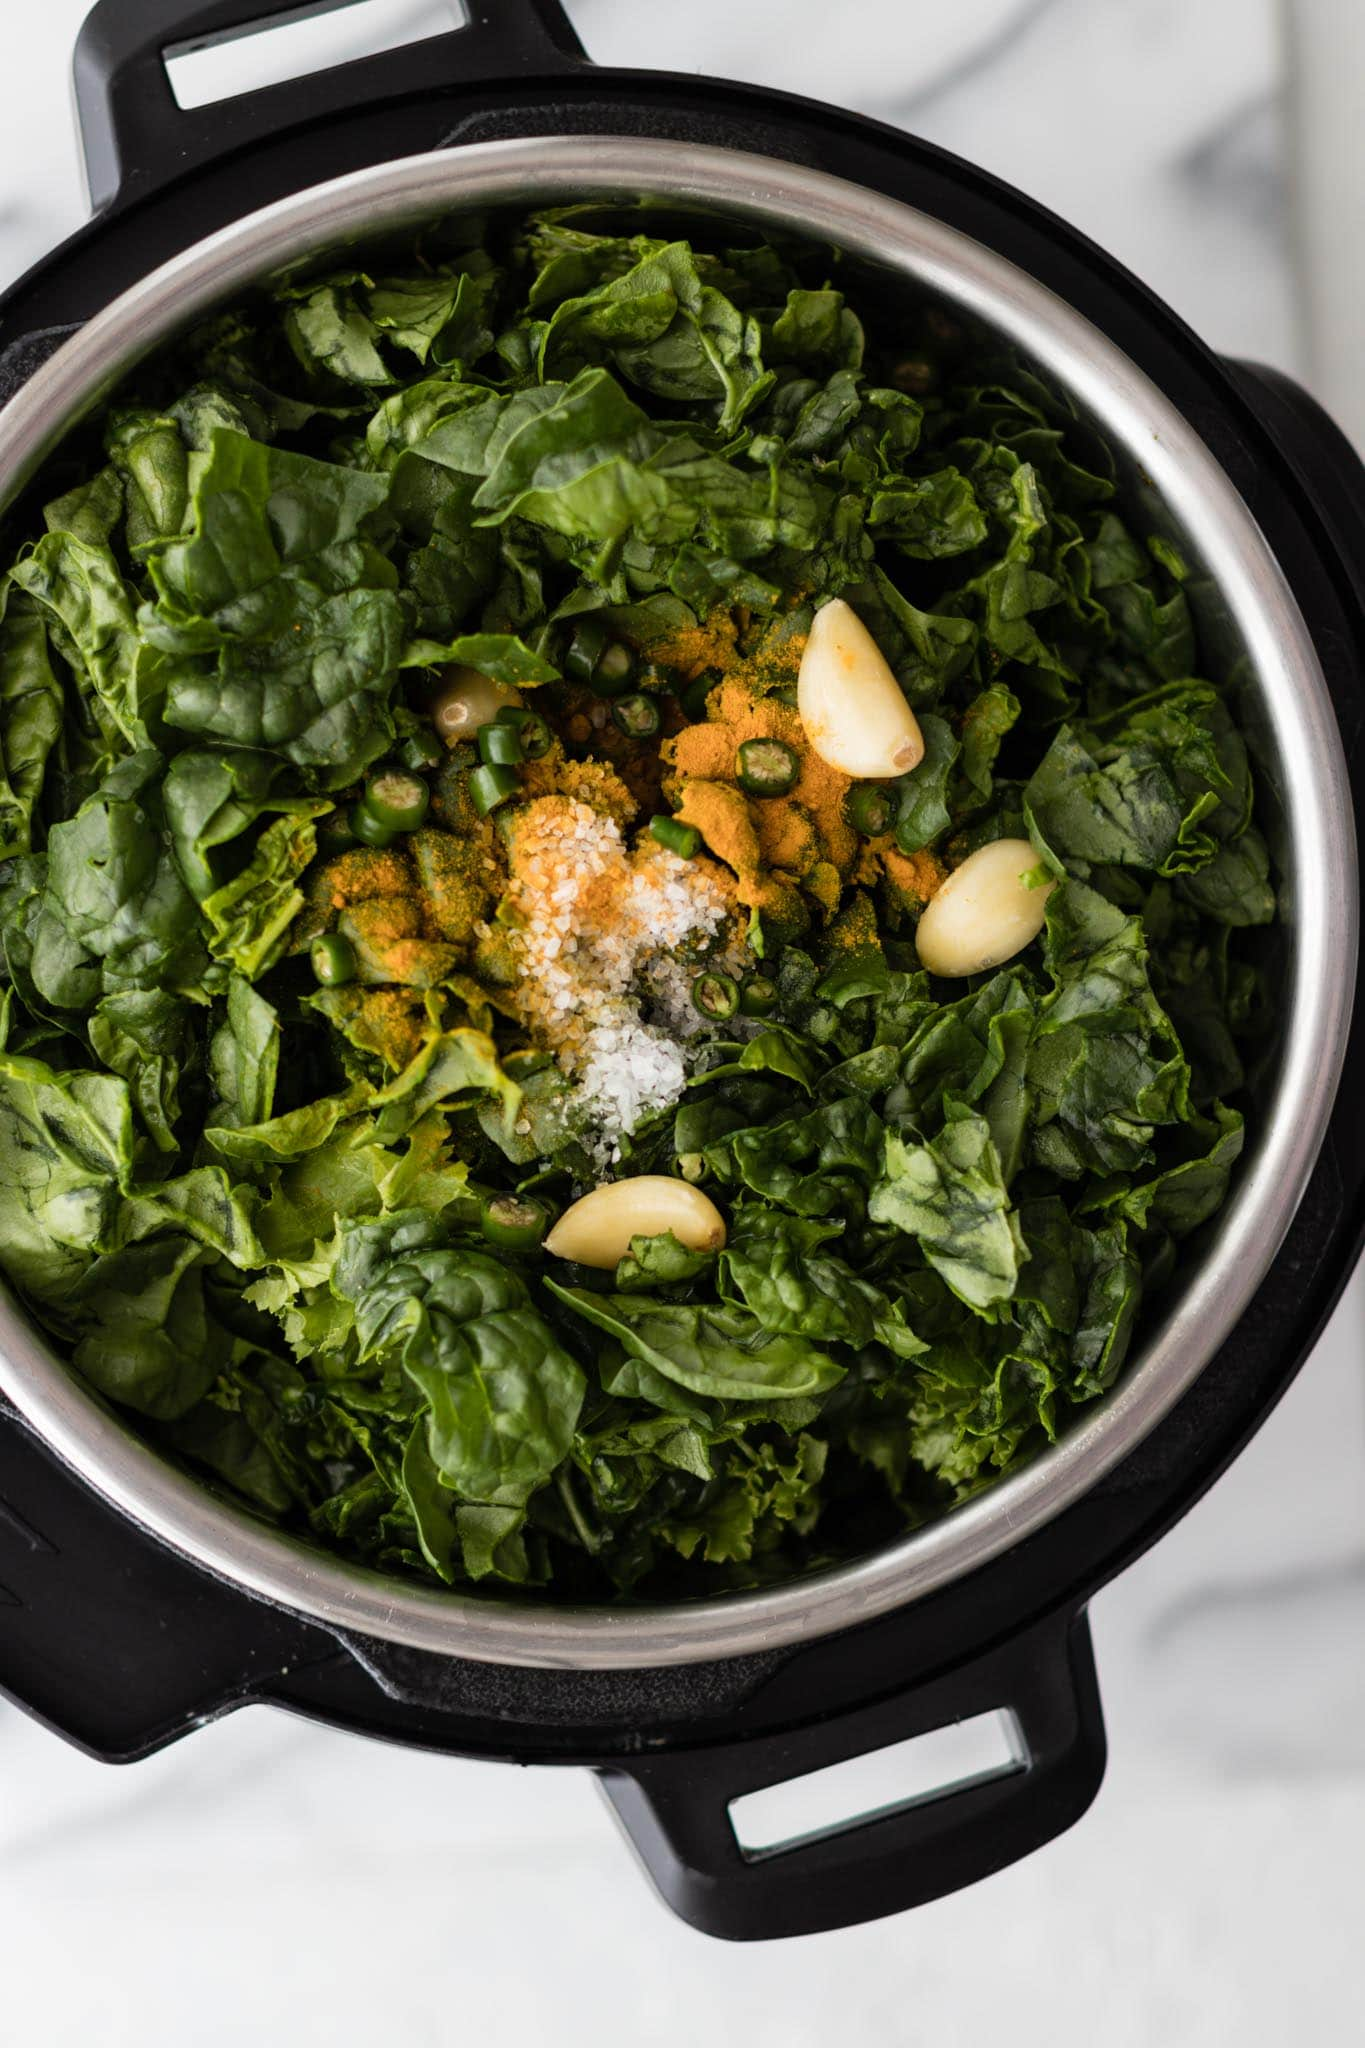 Instant Pot filled with mustard greens and spinach, garlic, green chili pepper and turmeric ready to be cooked to make Sarson Ka Saag